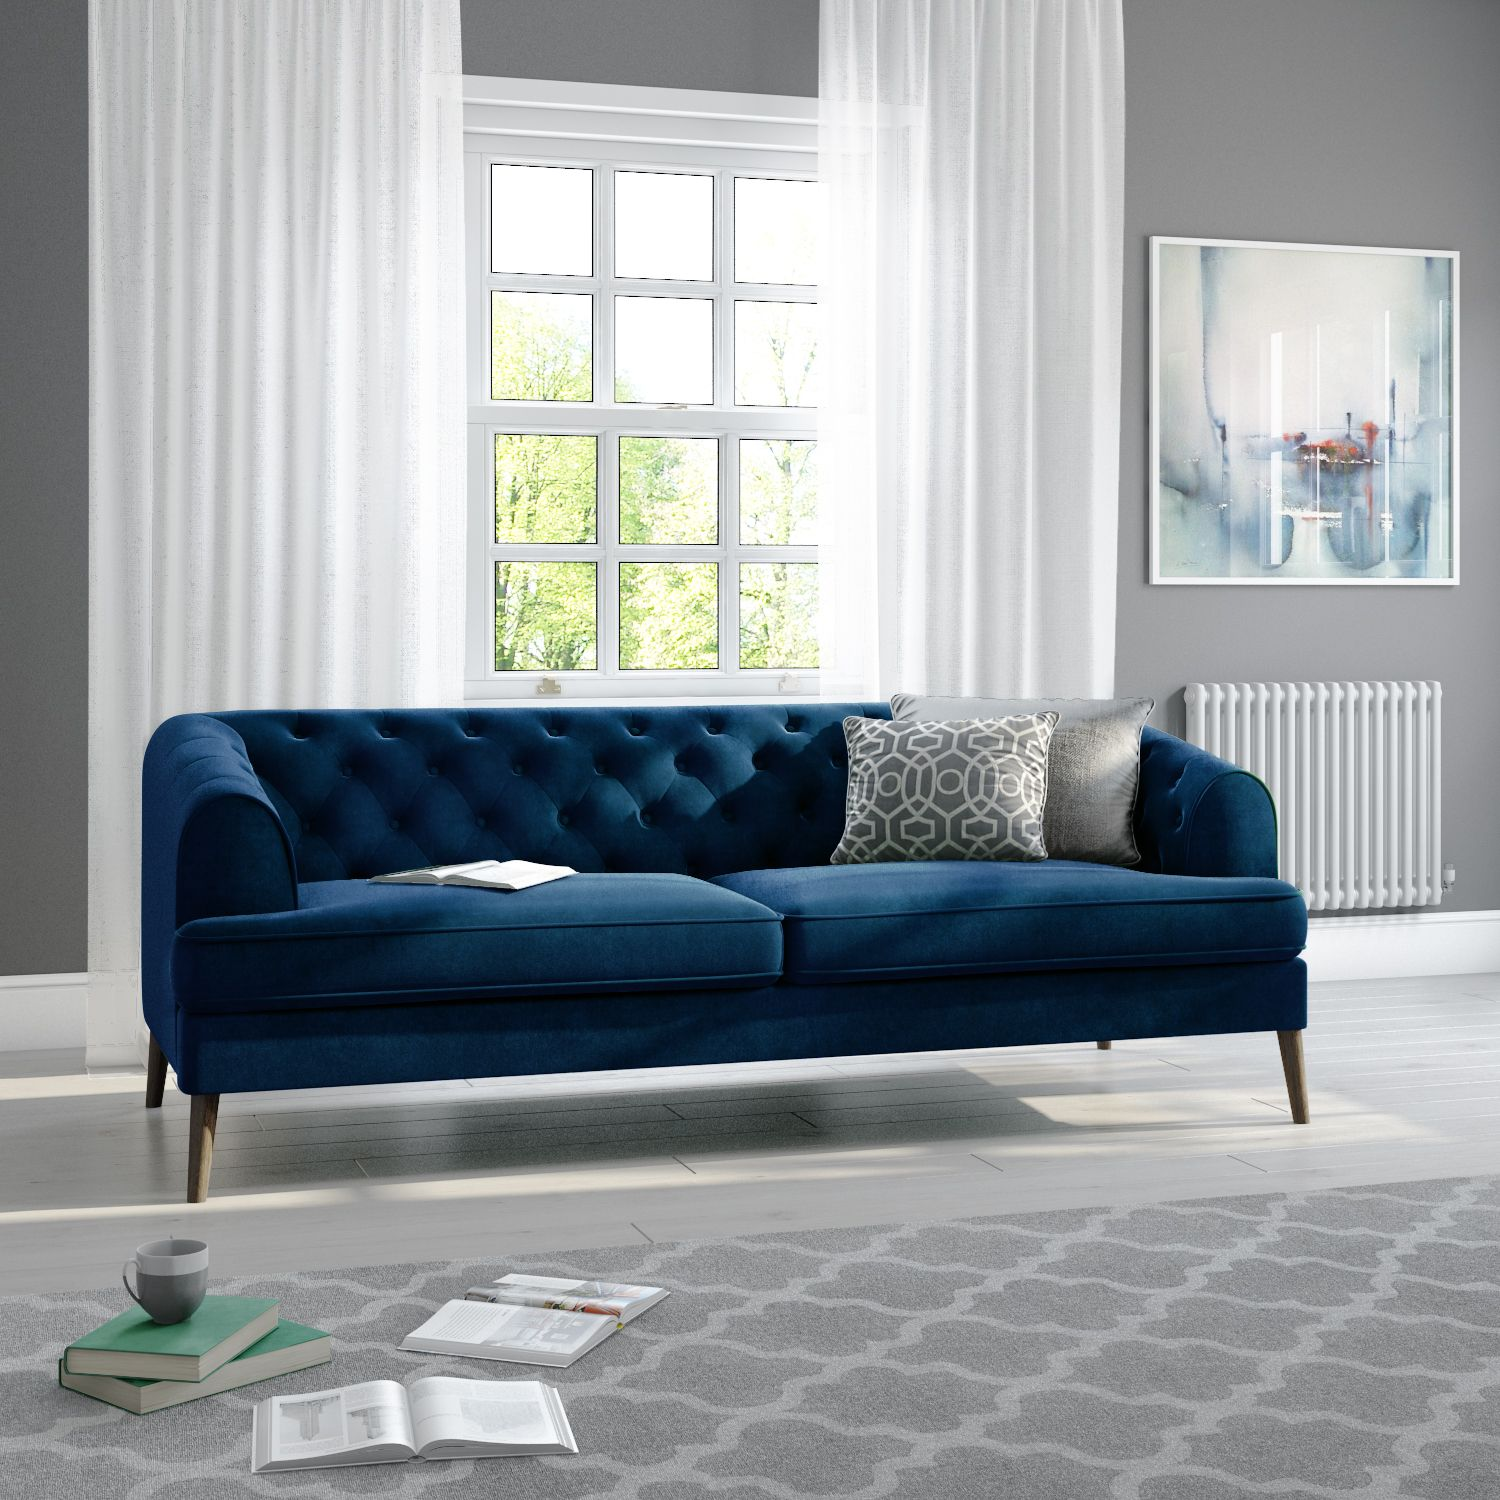 Inez Dark Blue Velvet 3 Seater Chesterfield Sofa Sof035 Green Velvet Sofa Green Sofa Living Room Living Room Green